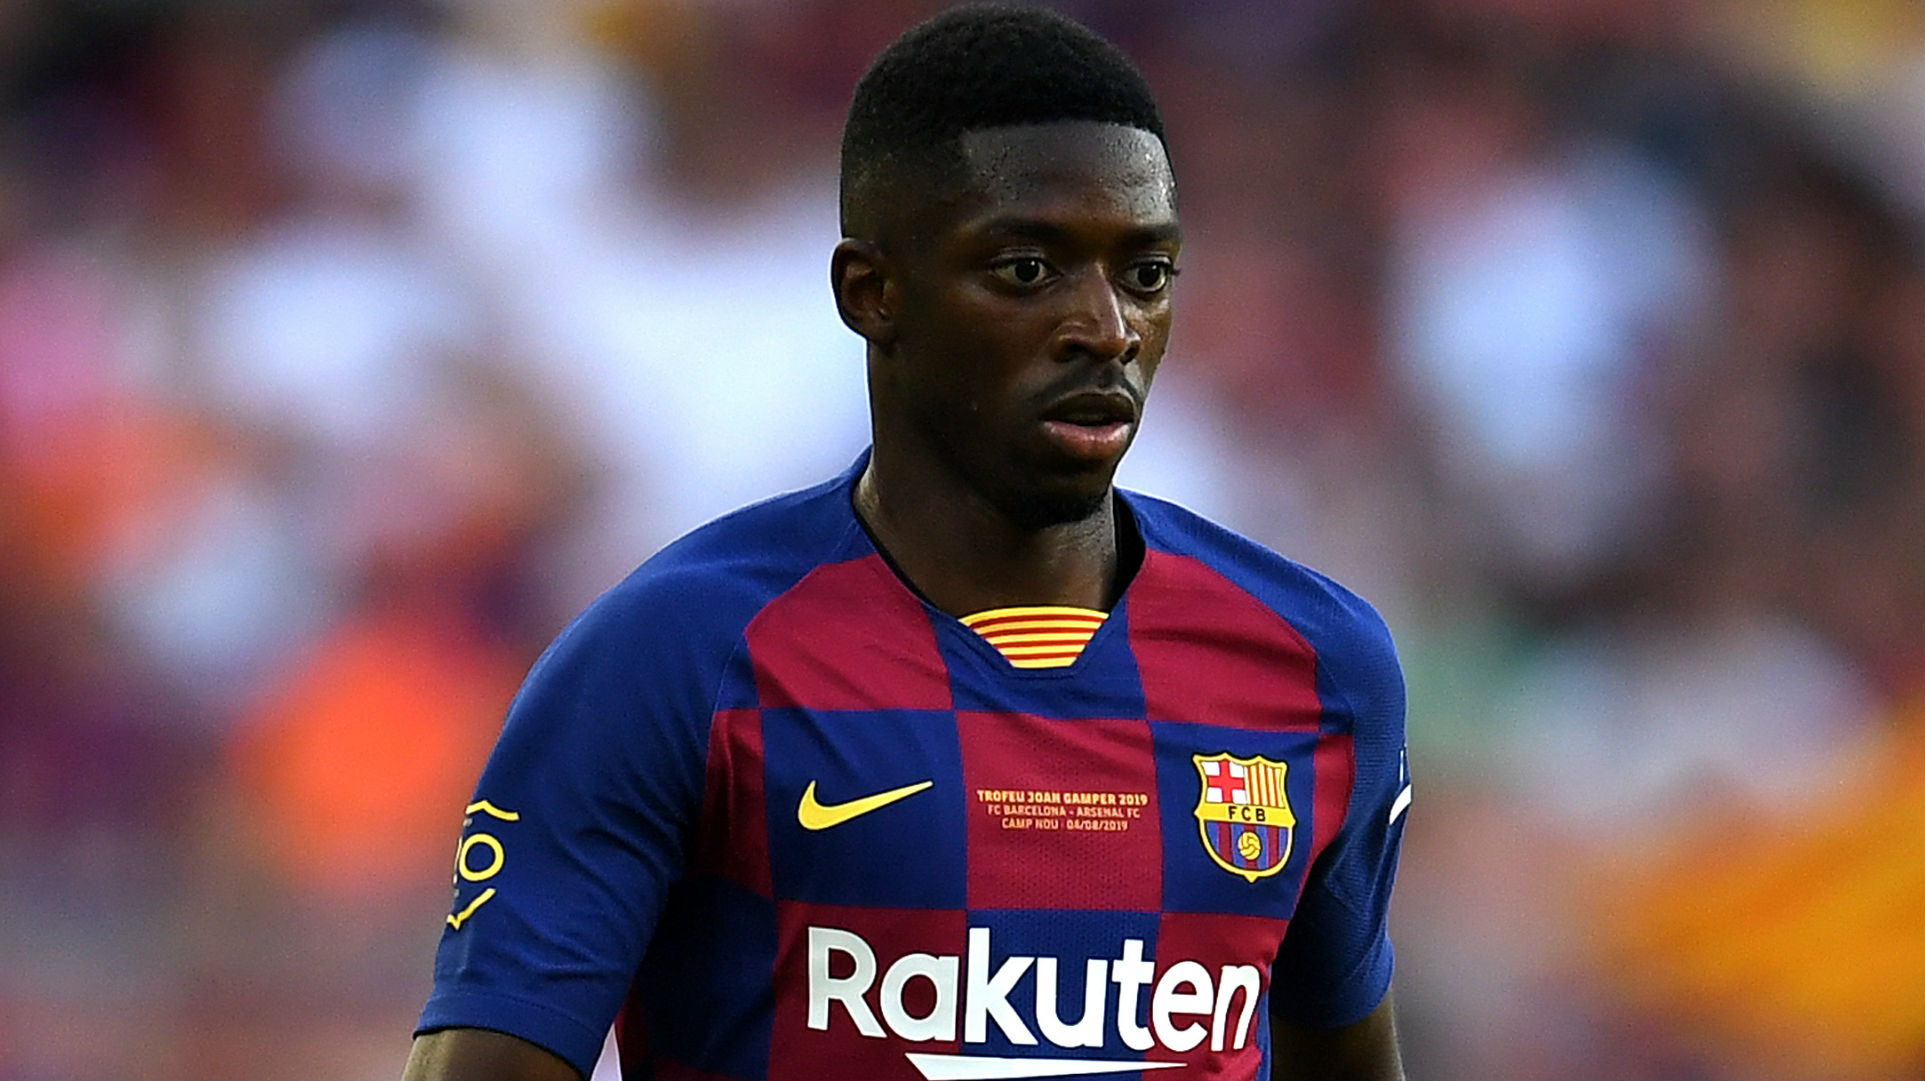 'Everyone always has to earn their place' - Valverde challenges Dembele to prove his worth at Barcelona